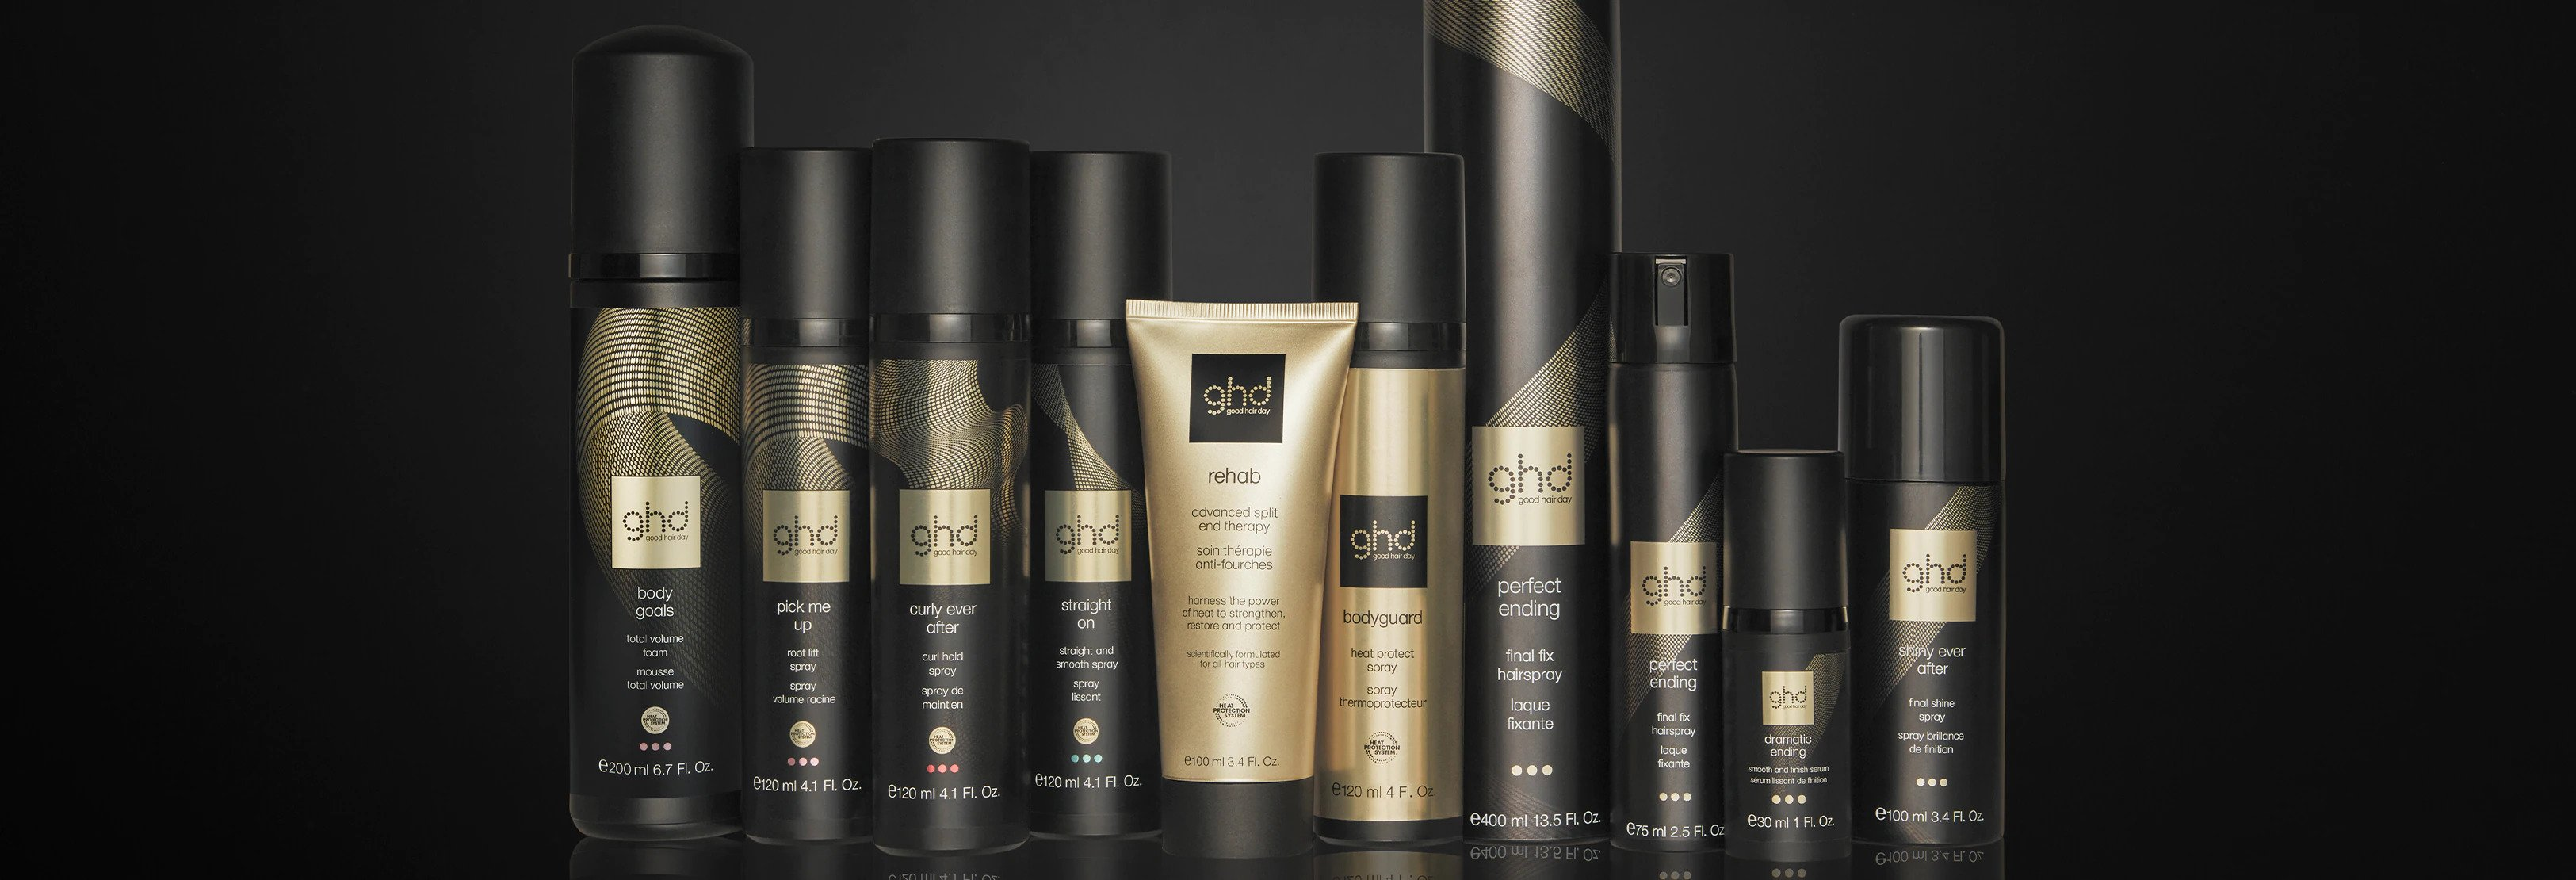 Hair_Styling_Products_Mobile_Nav_3250X1110.